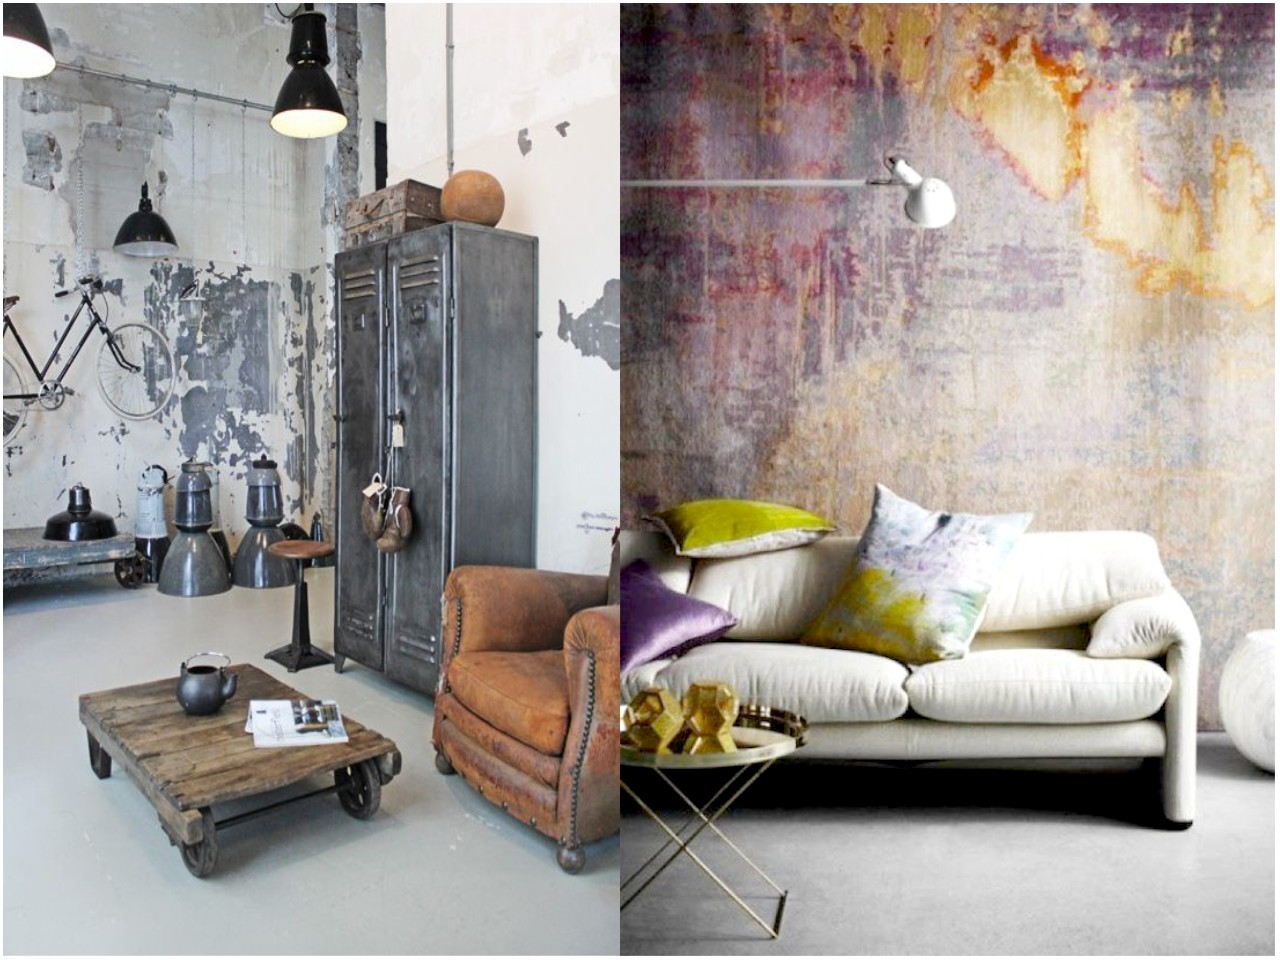 6 claves para una decoraci n vintage industrial - Decoracion pintura paredes ...